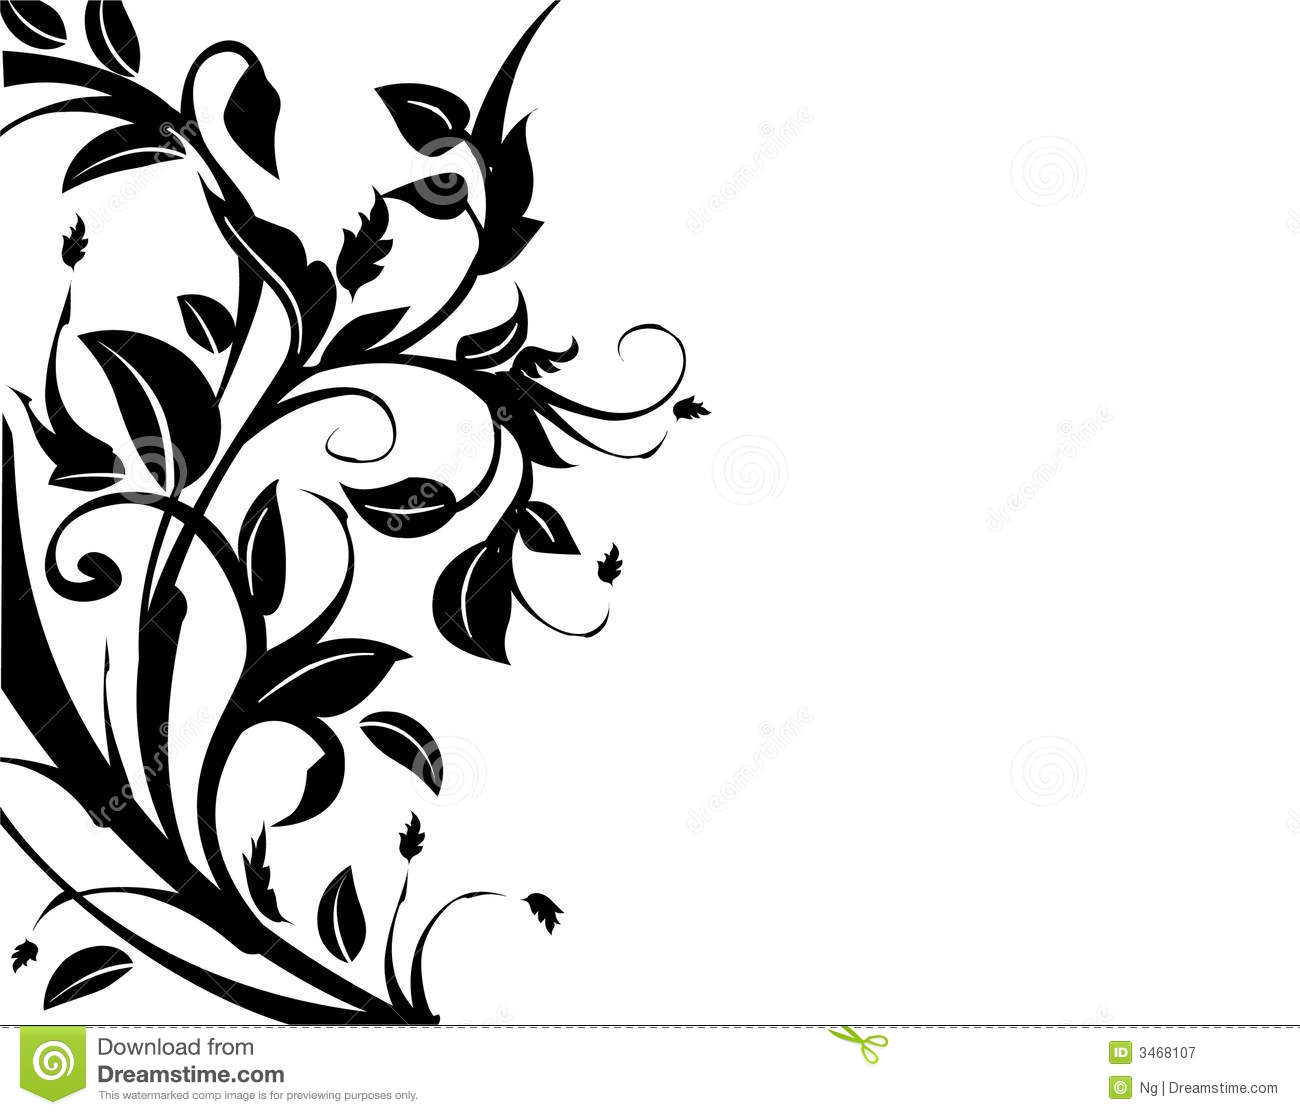 Decorative Black Flower Border Stock Image: Floral Decorative Border Royalty Free Stock Photography